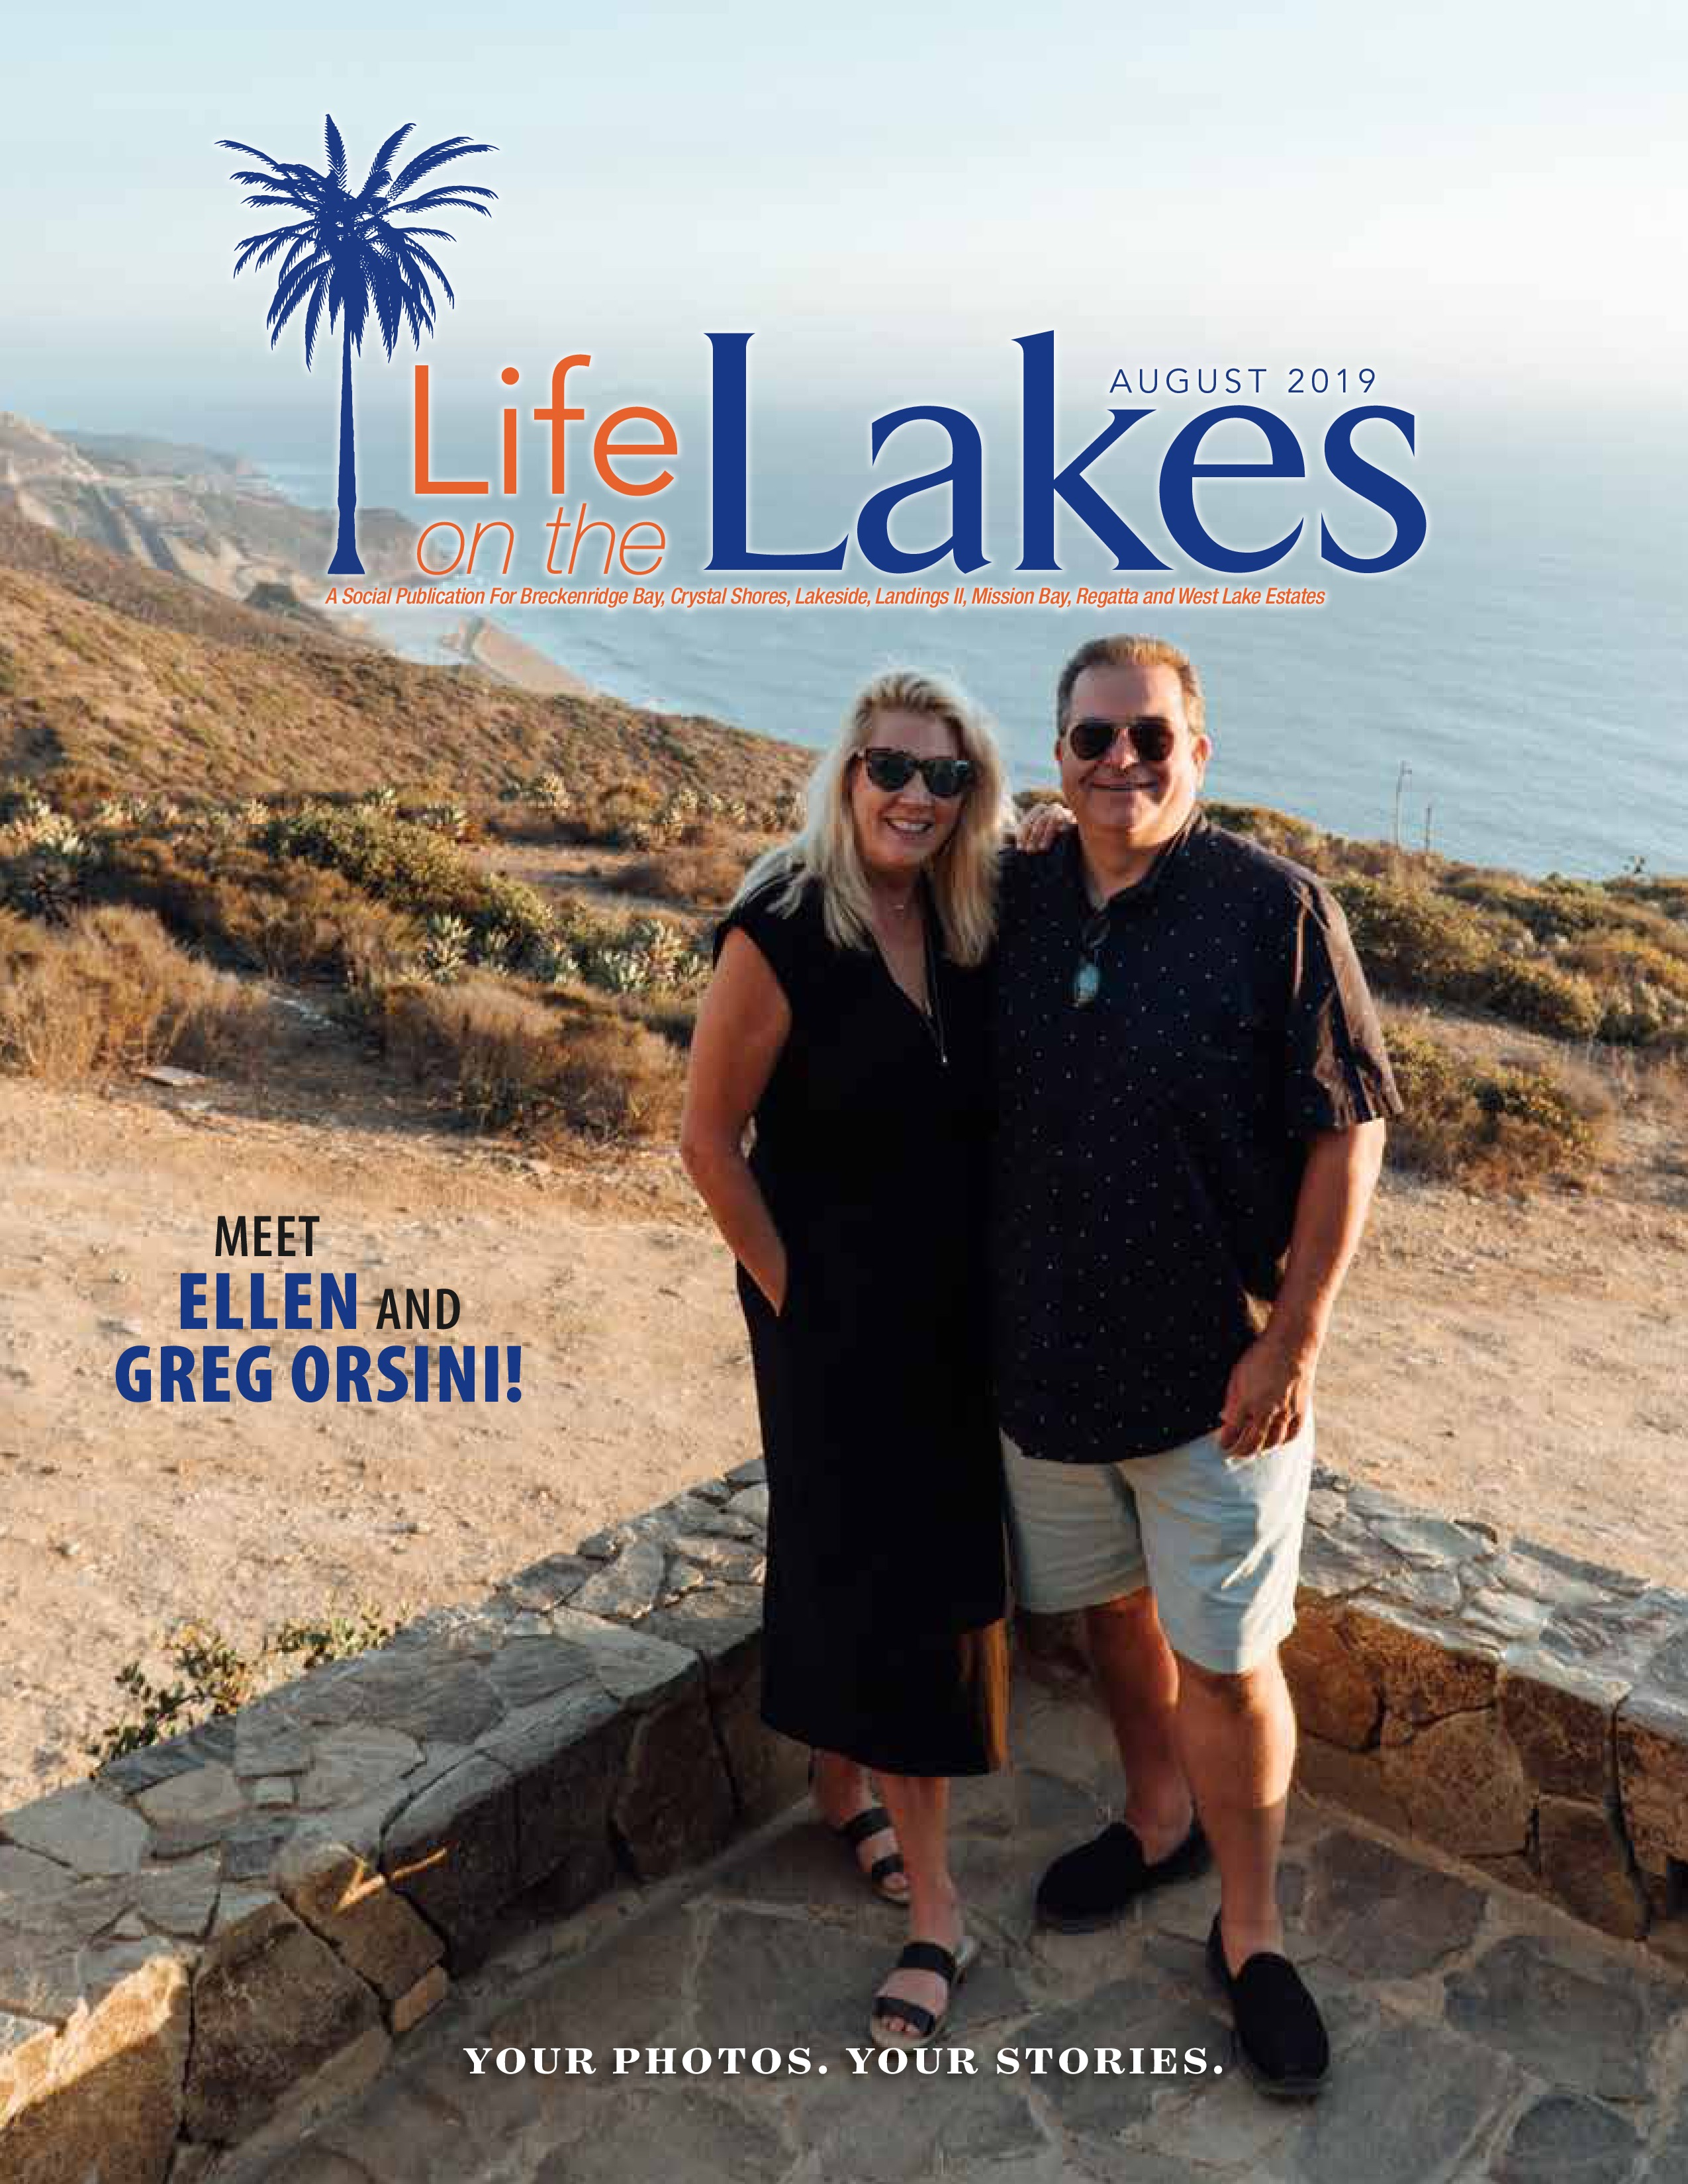 Aug 2019 life on the lakes page 1